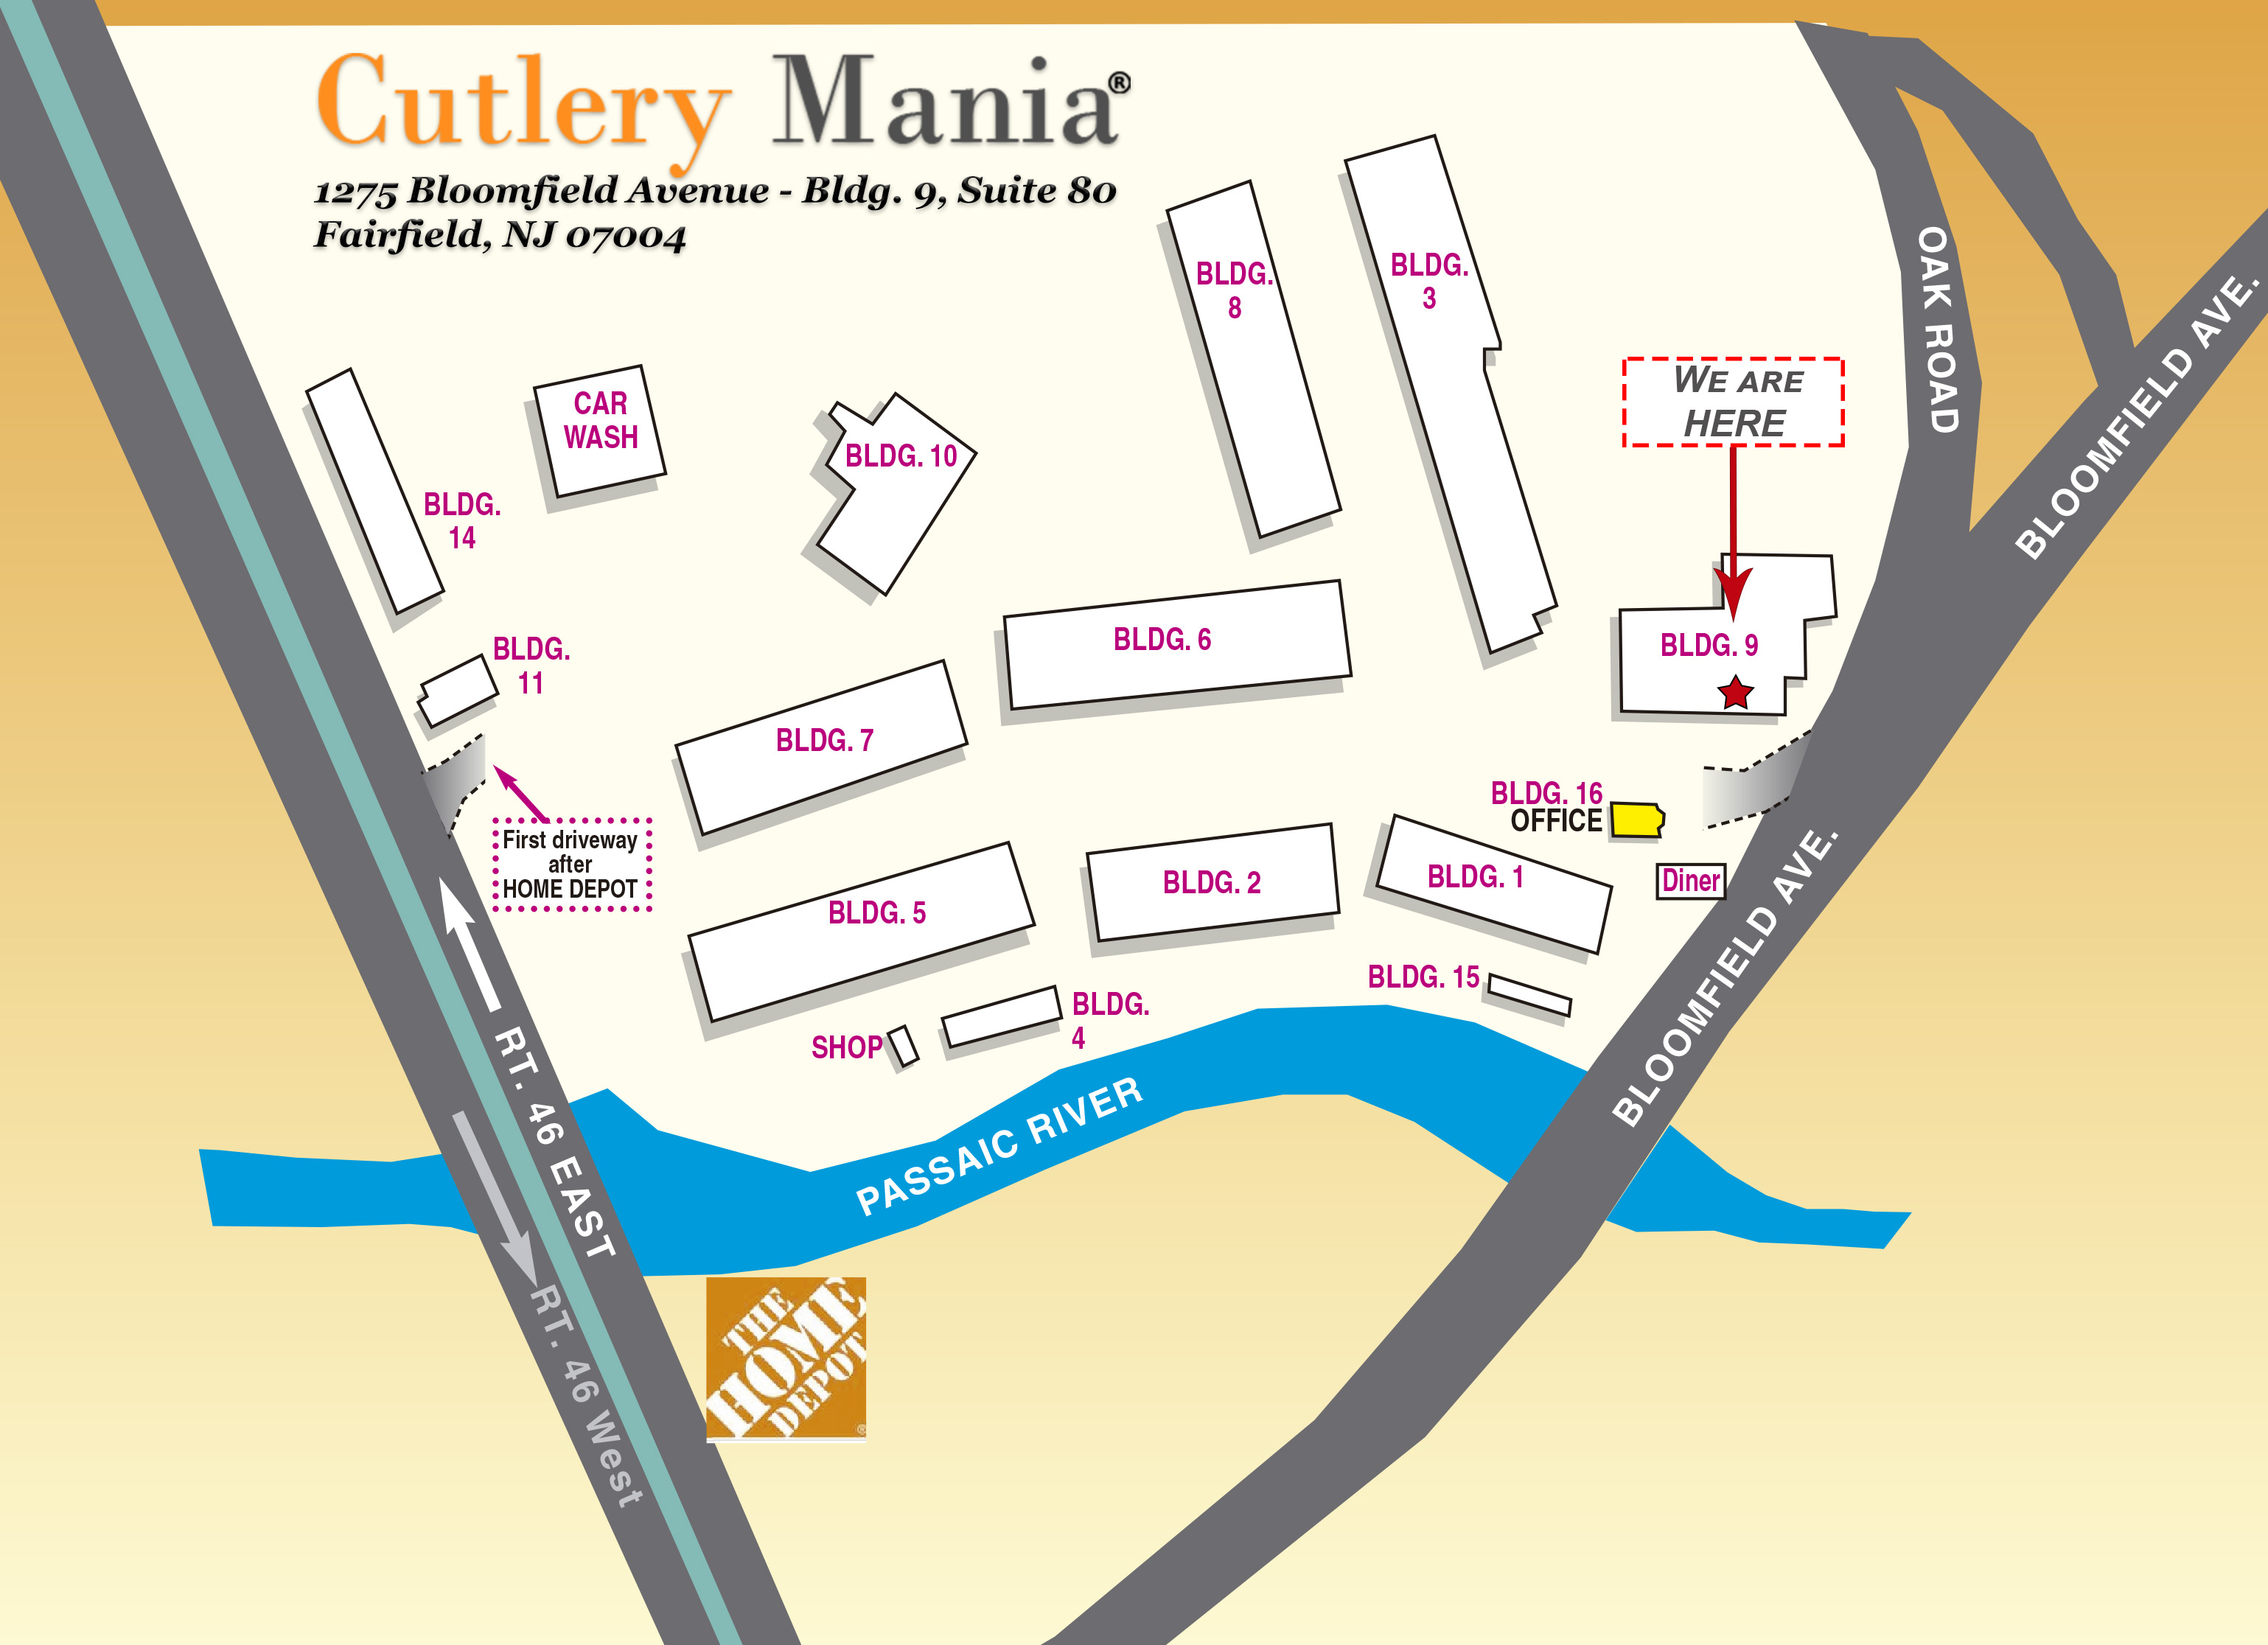 cutlerymania-location.jpg